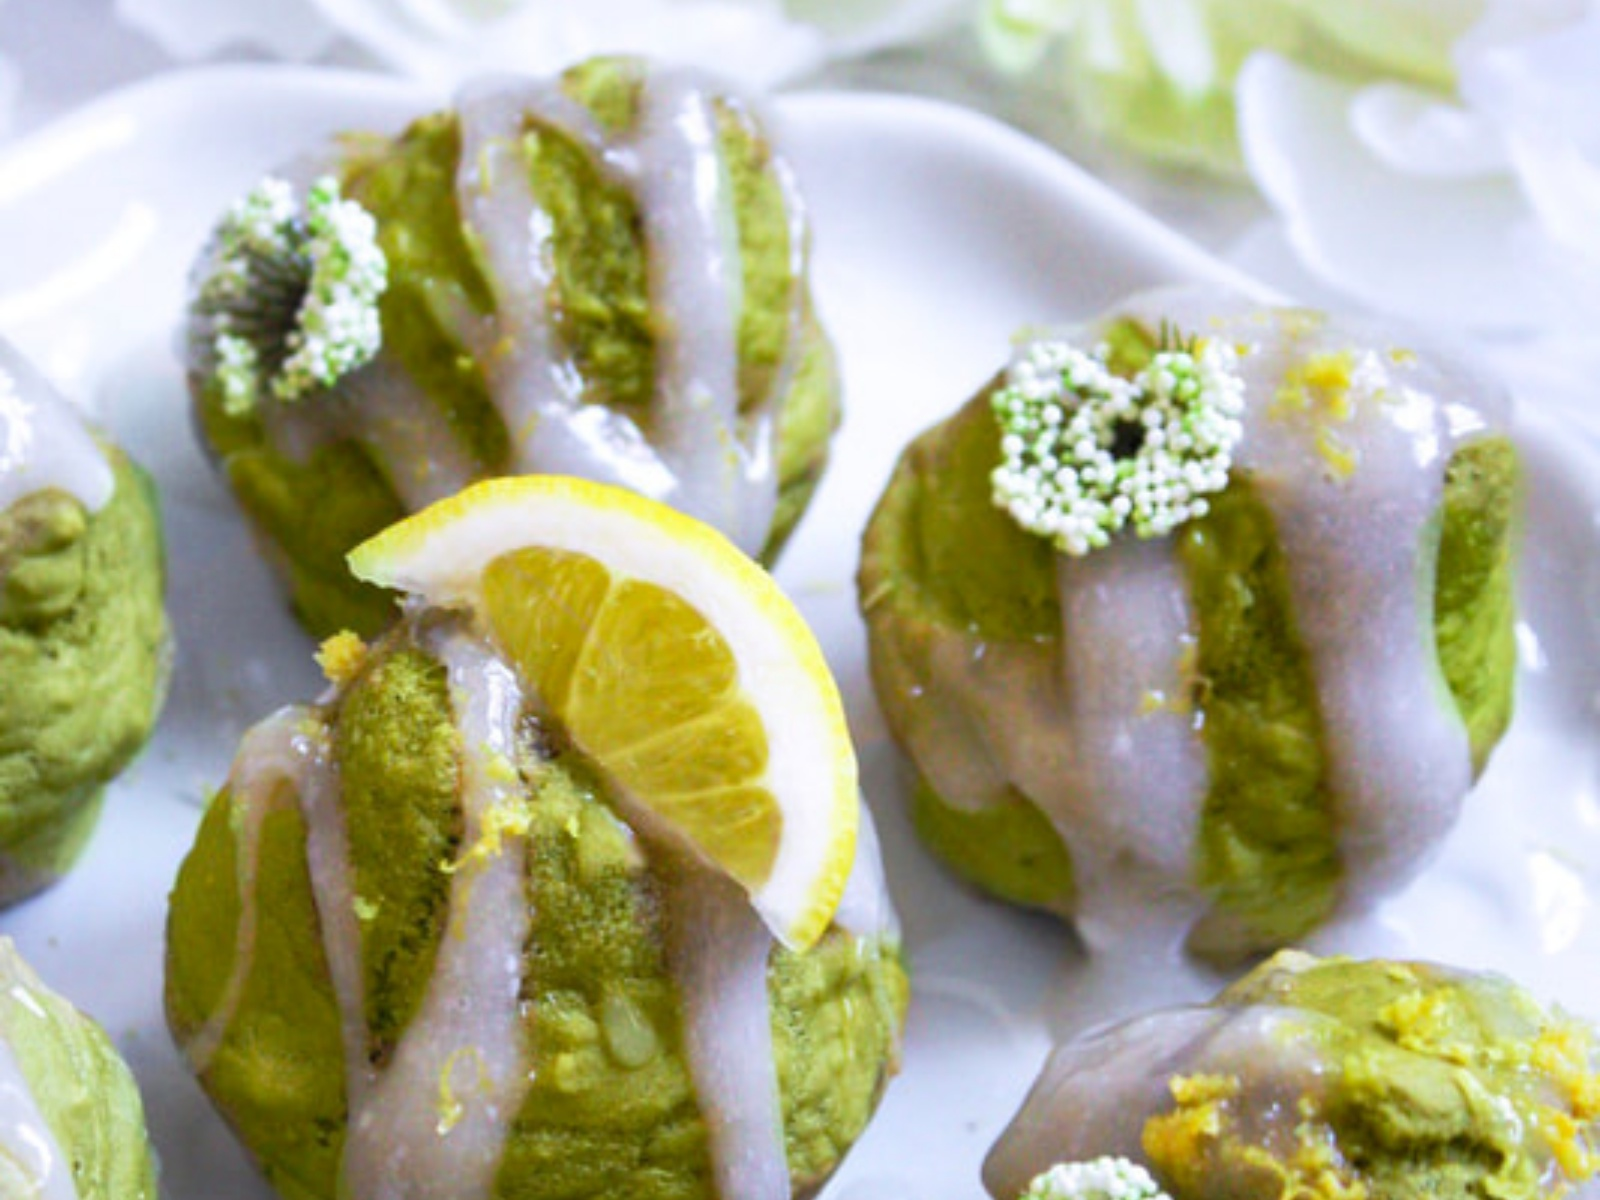 Fluffy vegan matcha lemon muffins